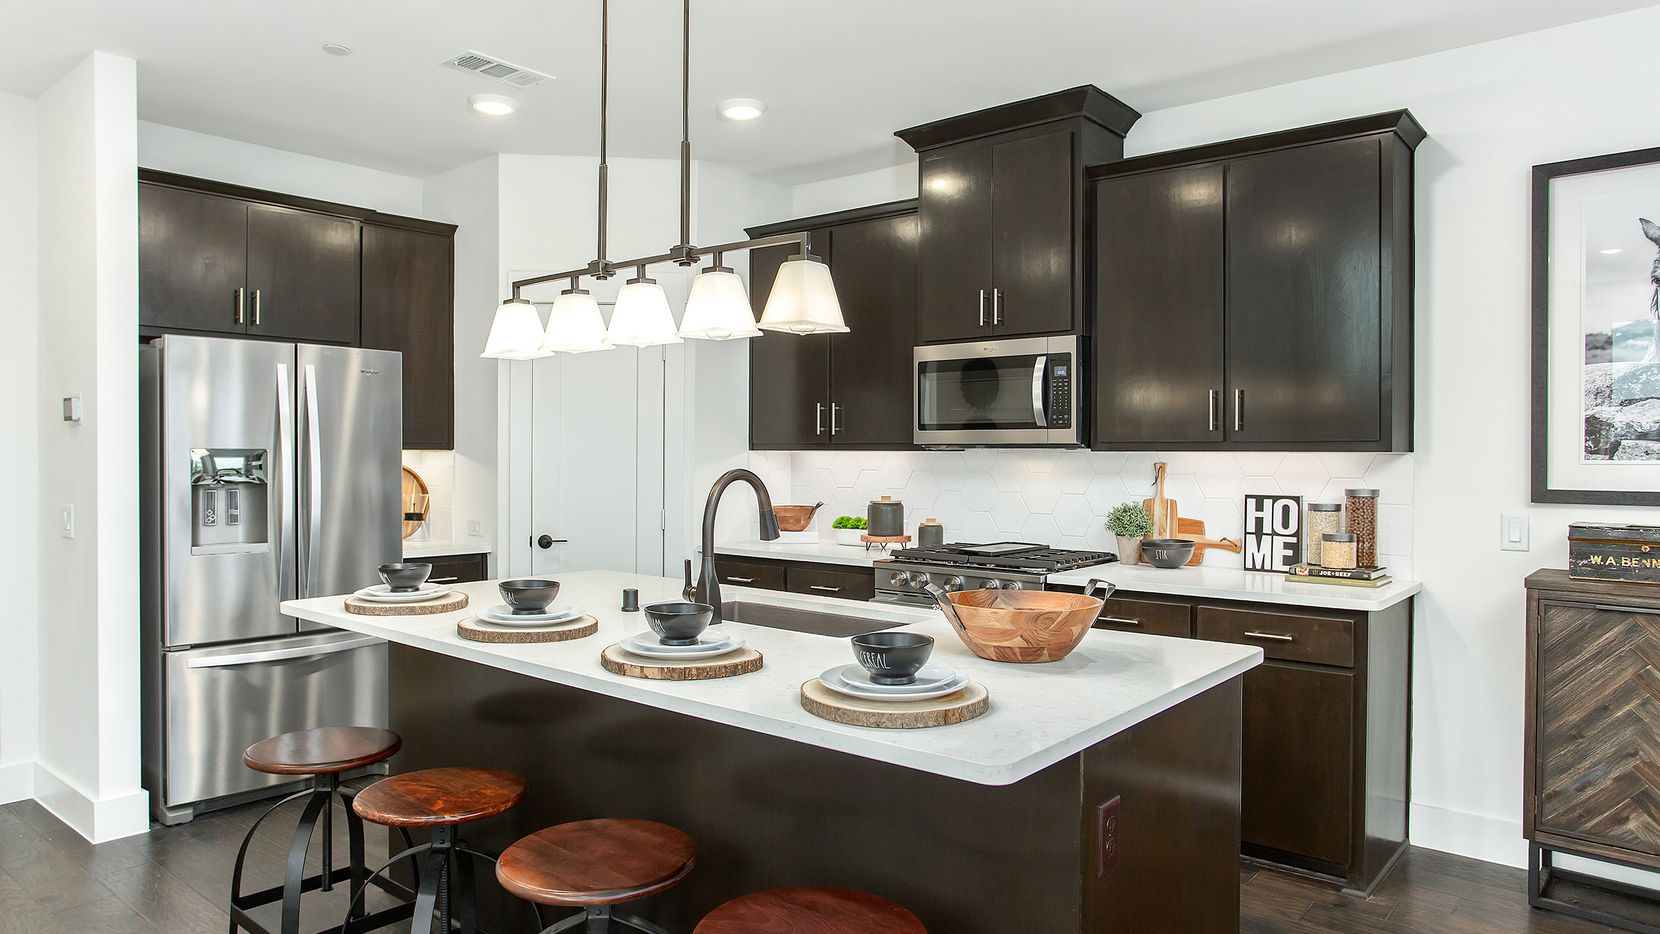 Two- and three-bedroom luxury townhomes will be ready for move-in soon in Woodbridge Townhomes in Wylie.